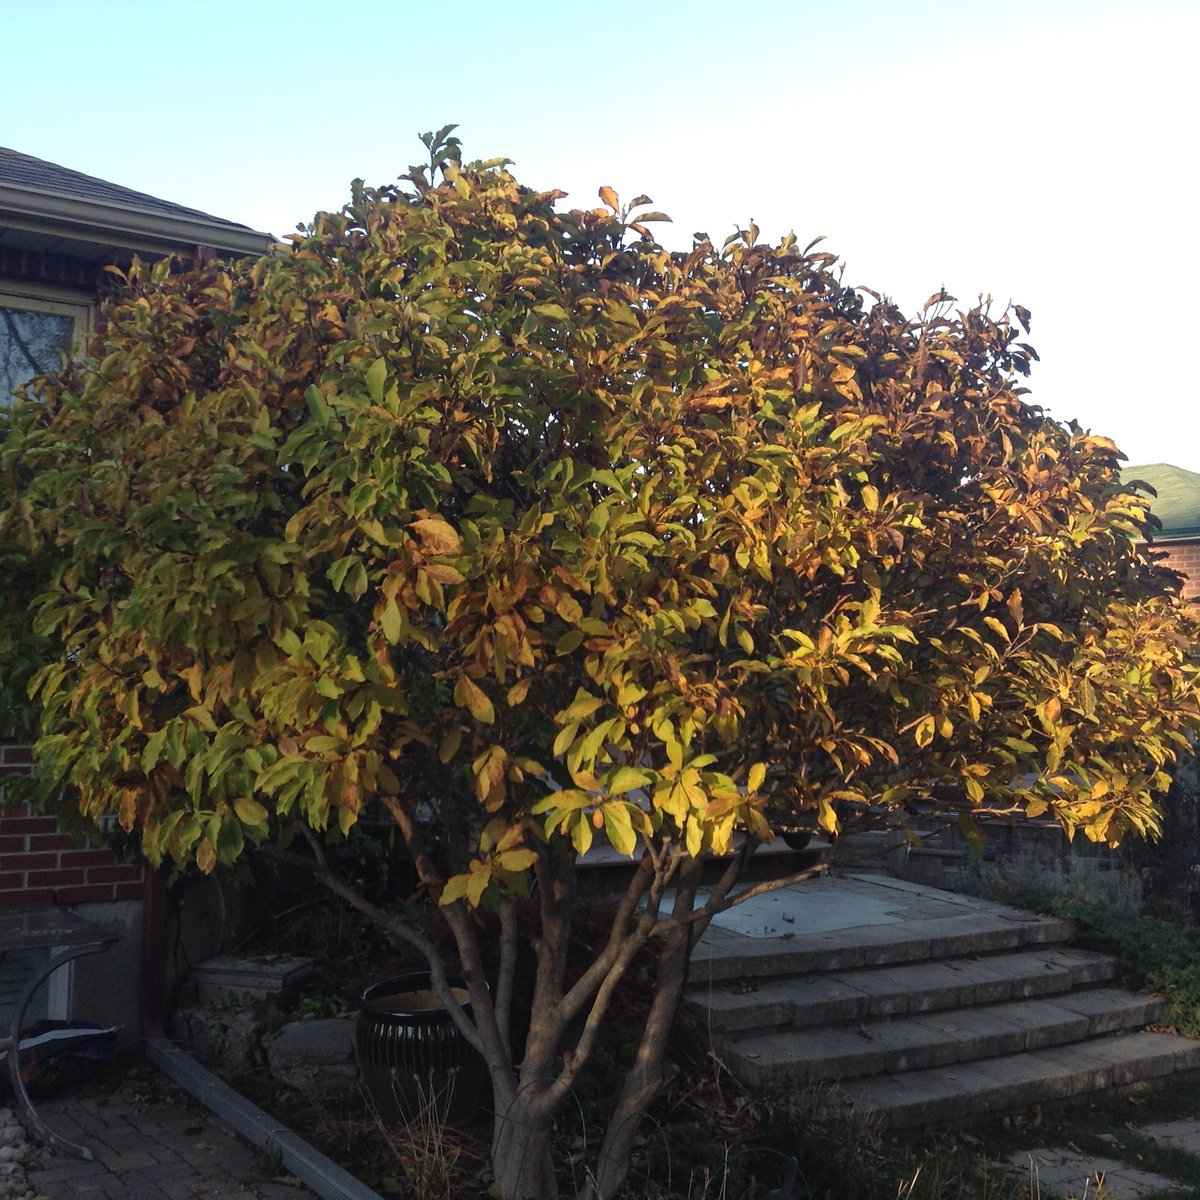 sunlit magnolia tree with yellowing leaves